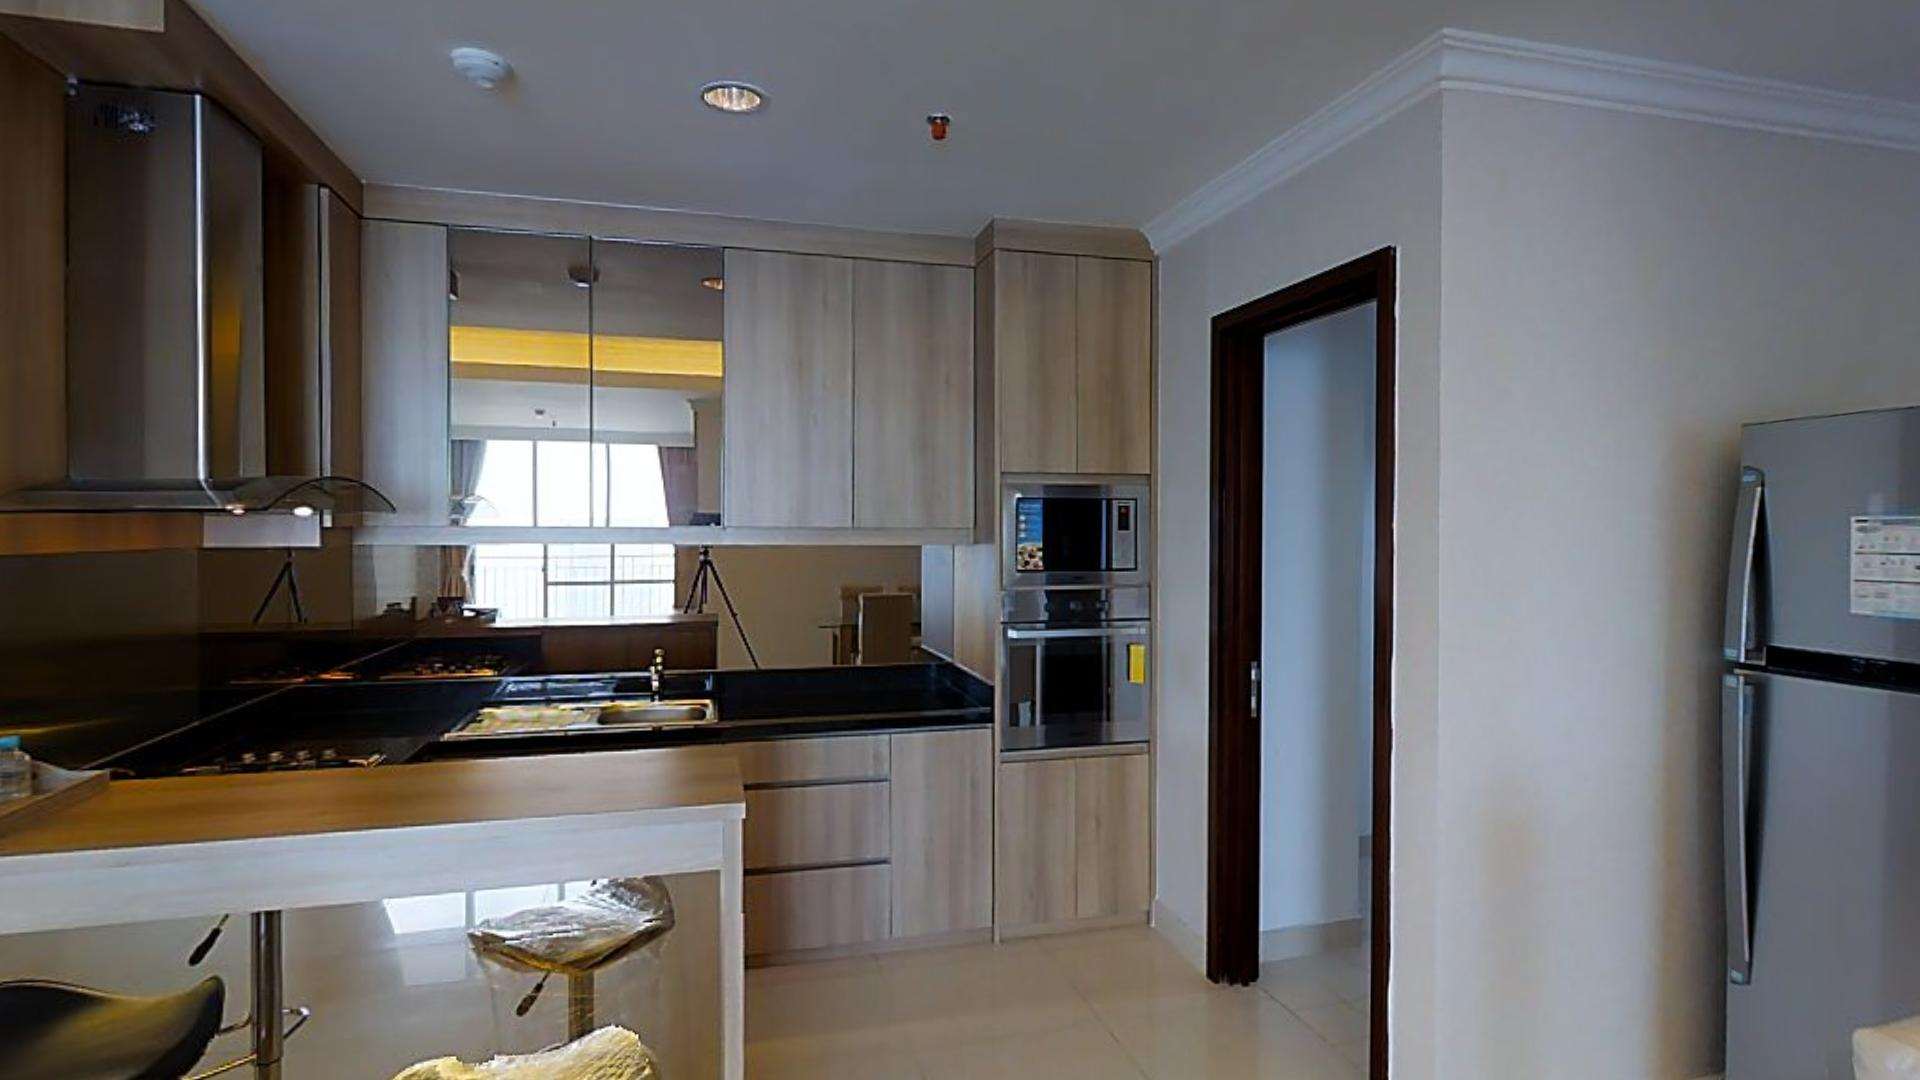 for rent Denpasar Residence - Spacious, clean, quiet apartment